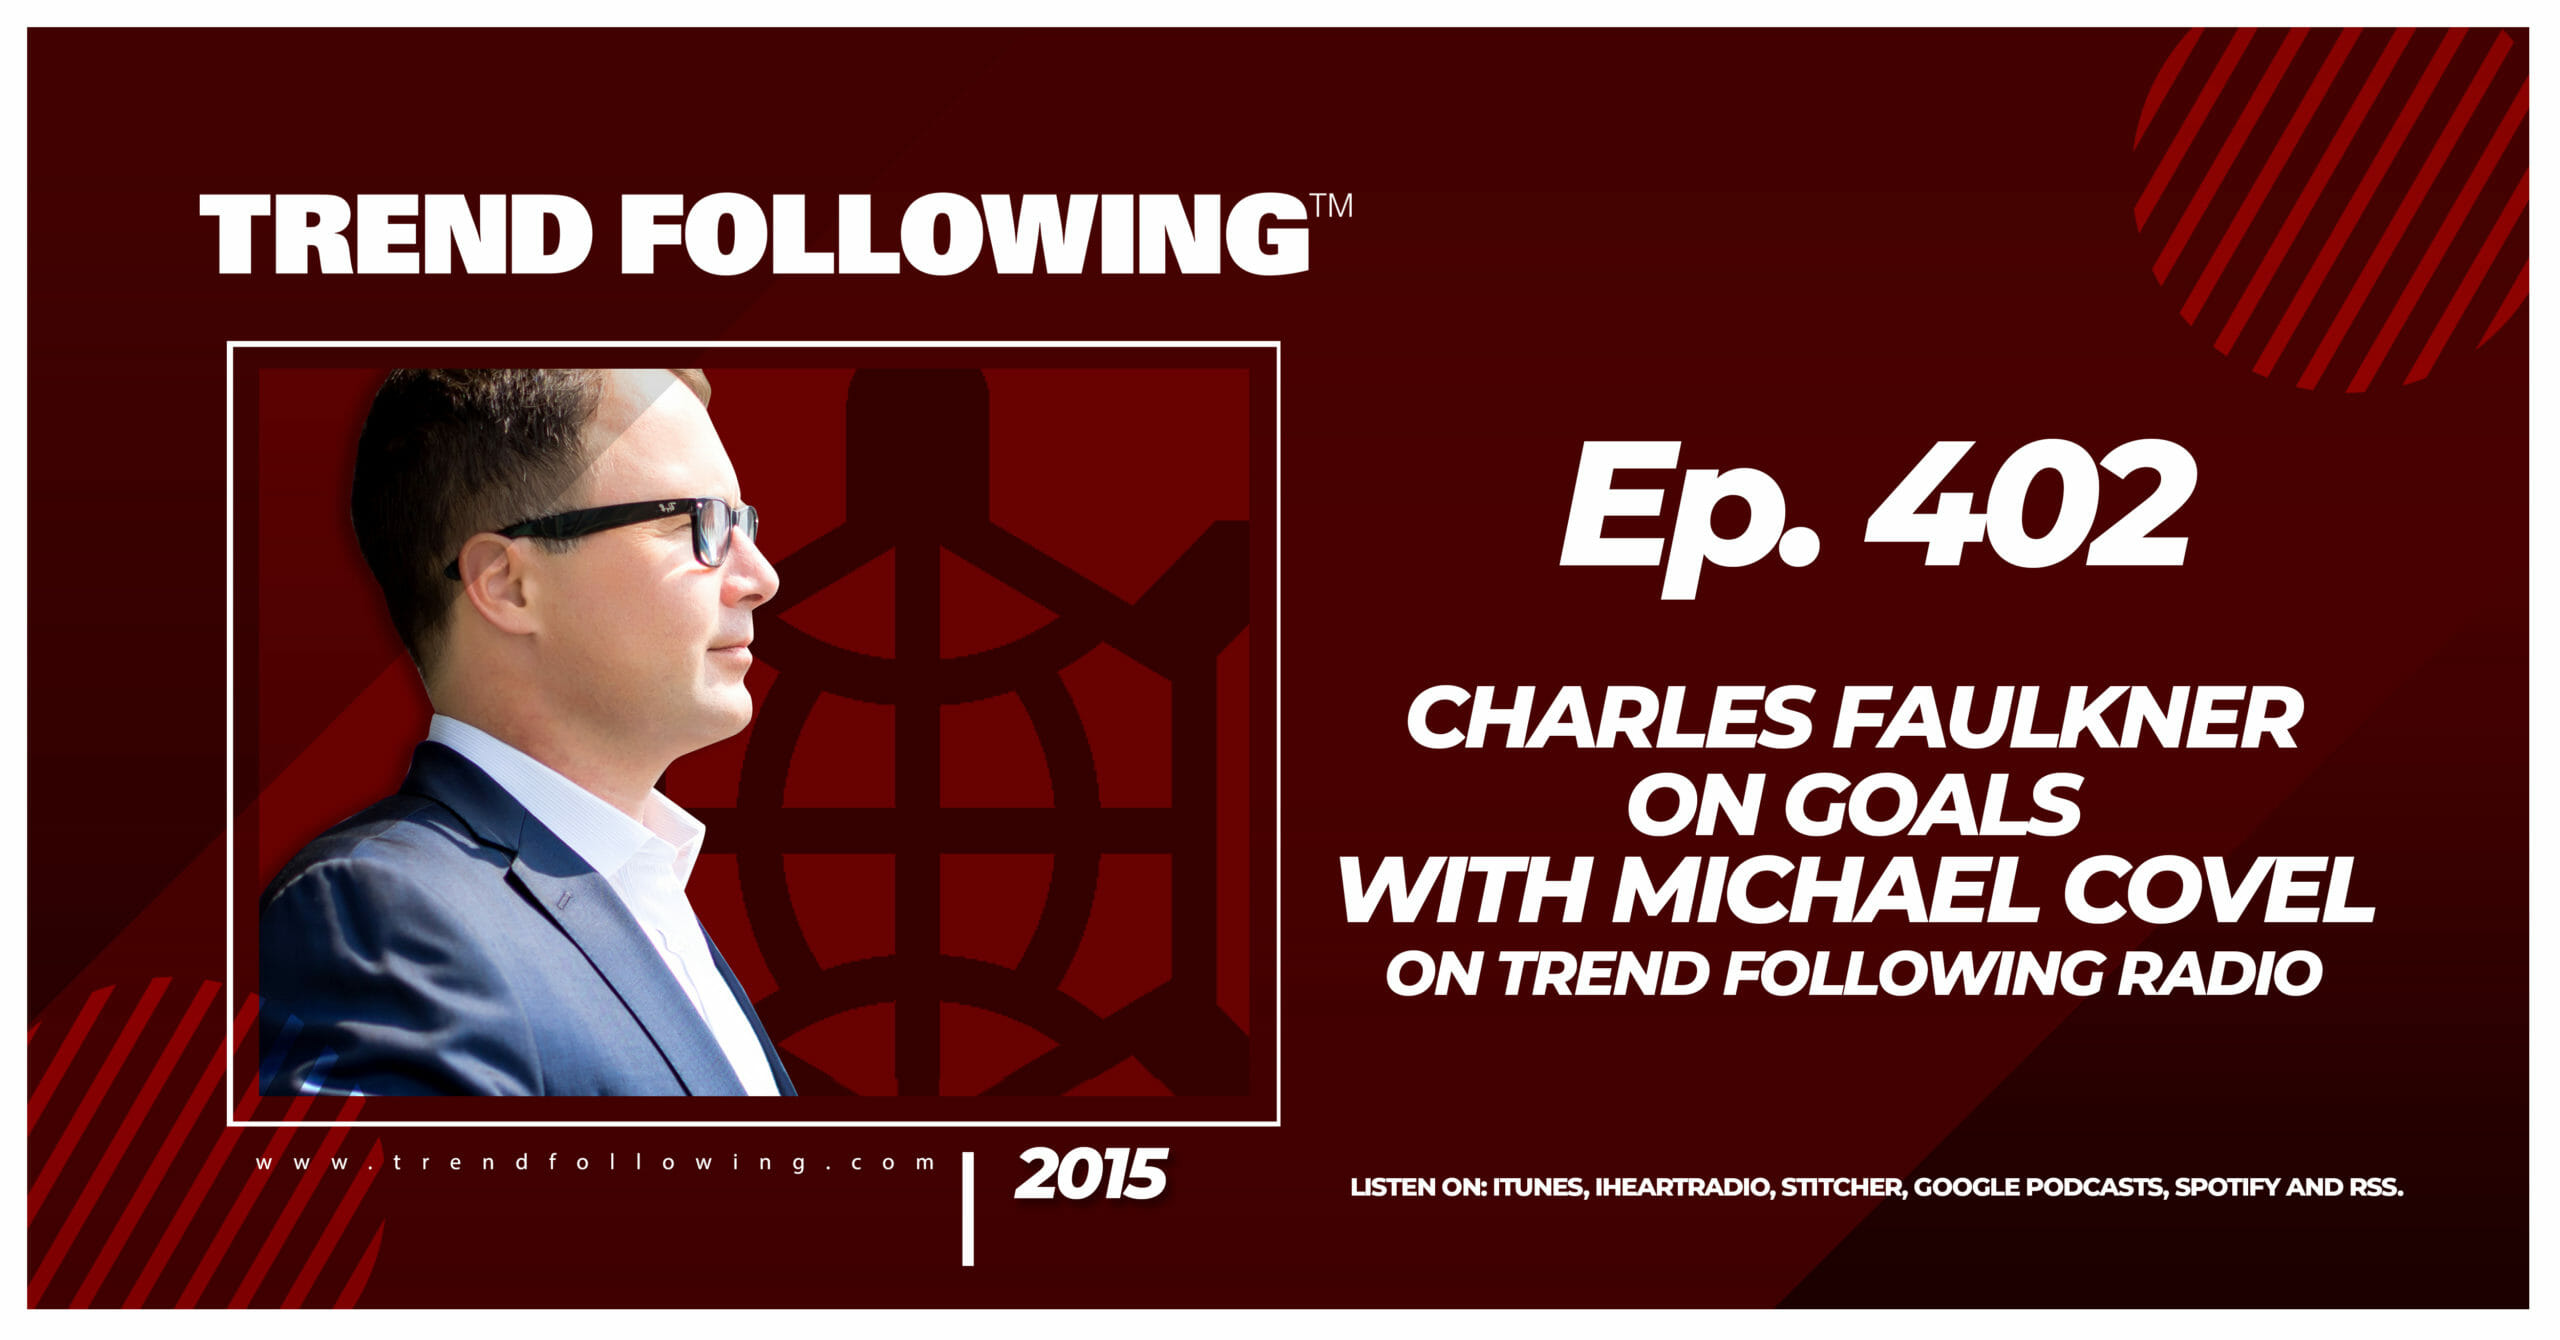 Charles Faulkner on Goals with Michael Covel on Trend Following Radio